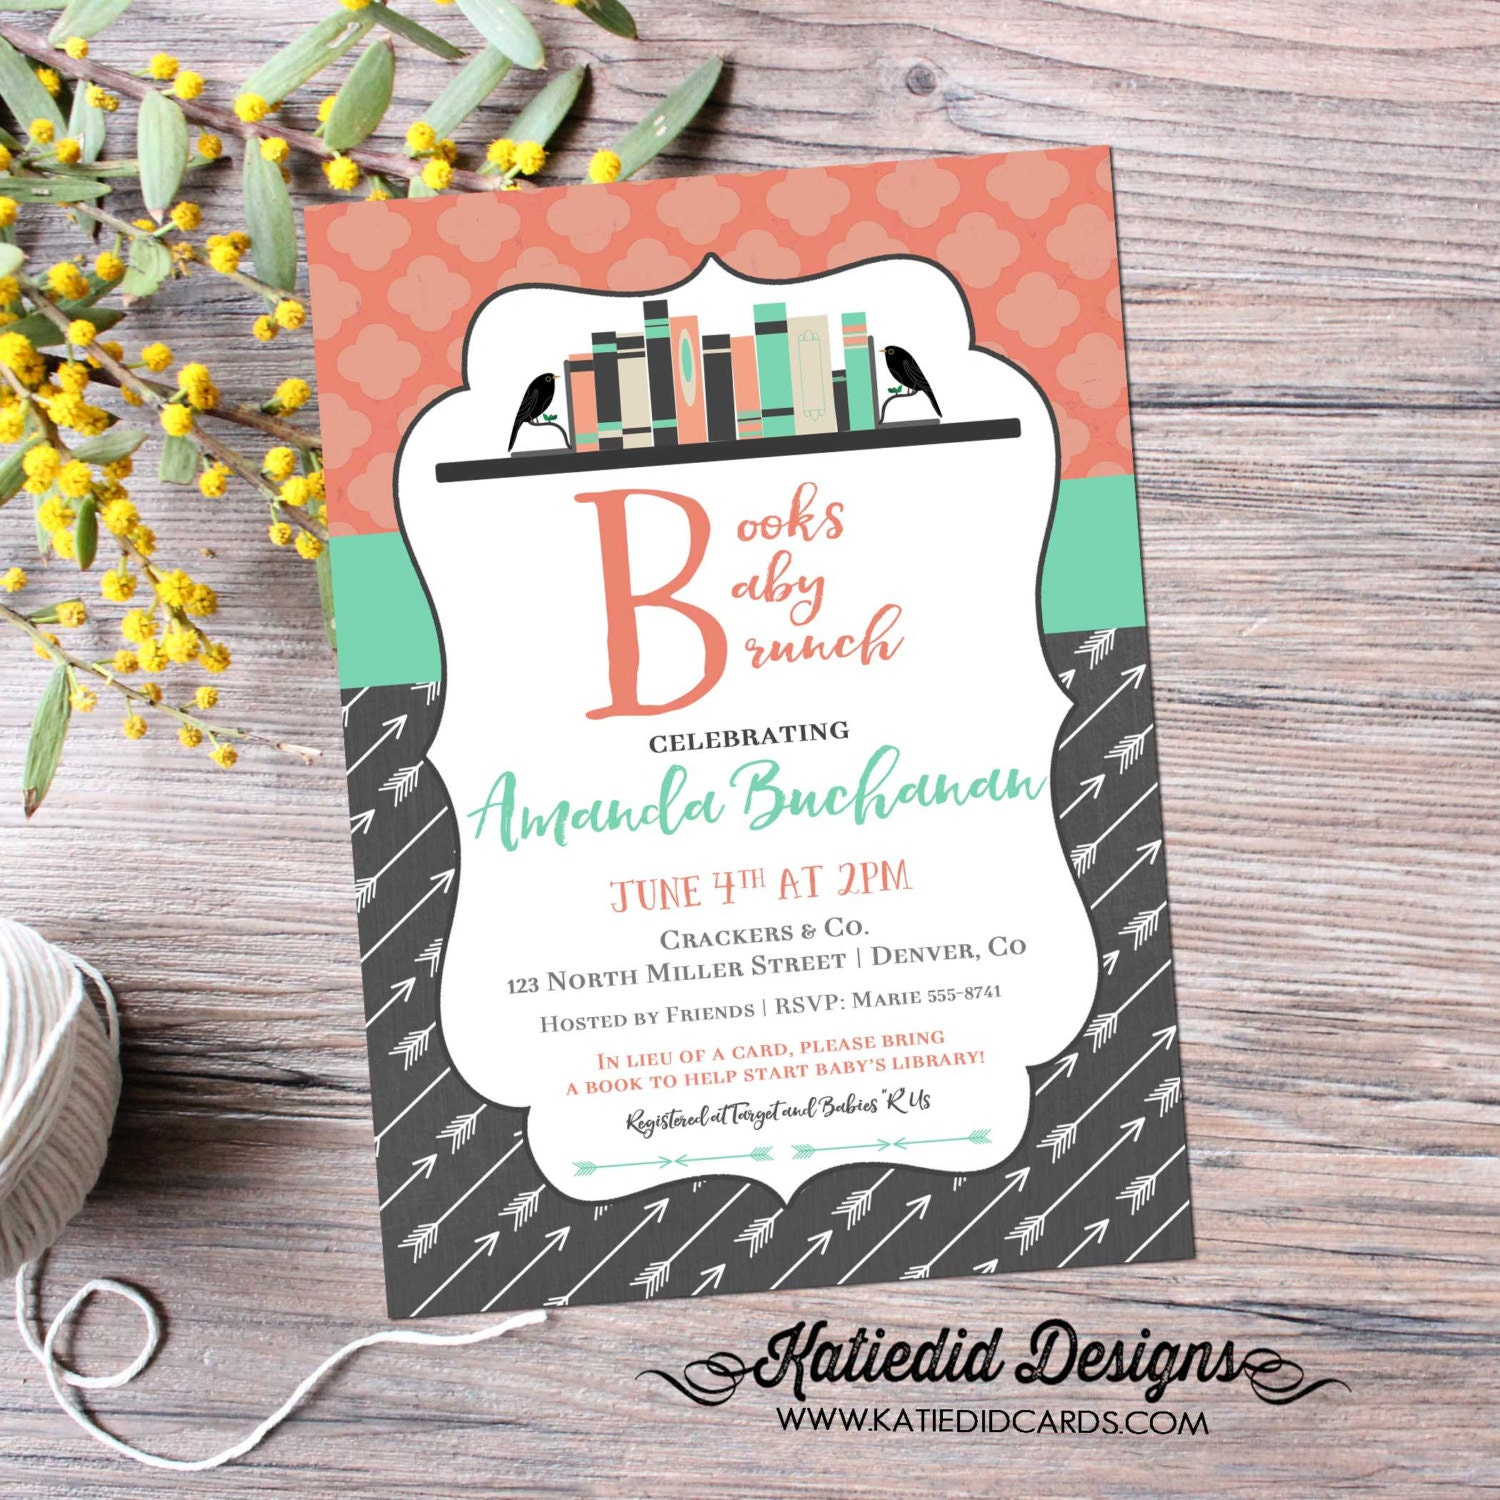 Bring A Book Baby Shower Invitation Tribal BOHO Chic Arrow